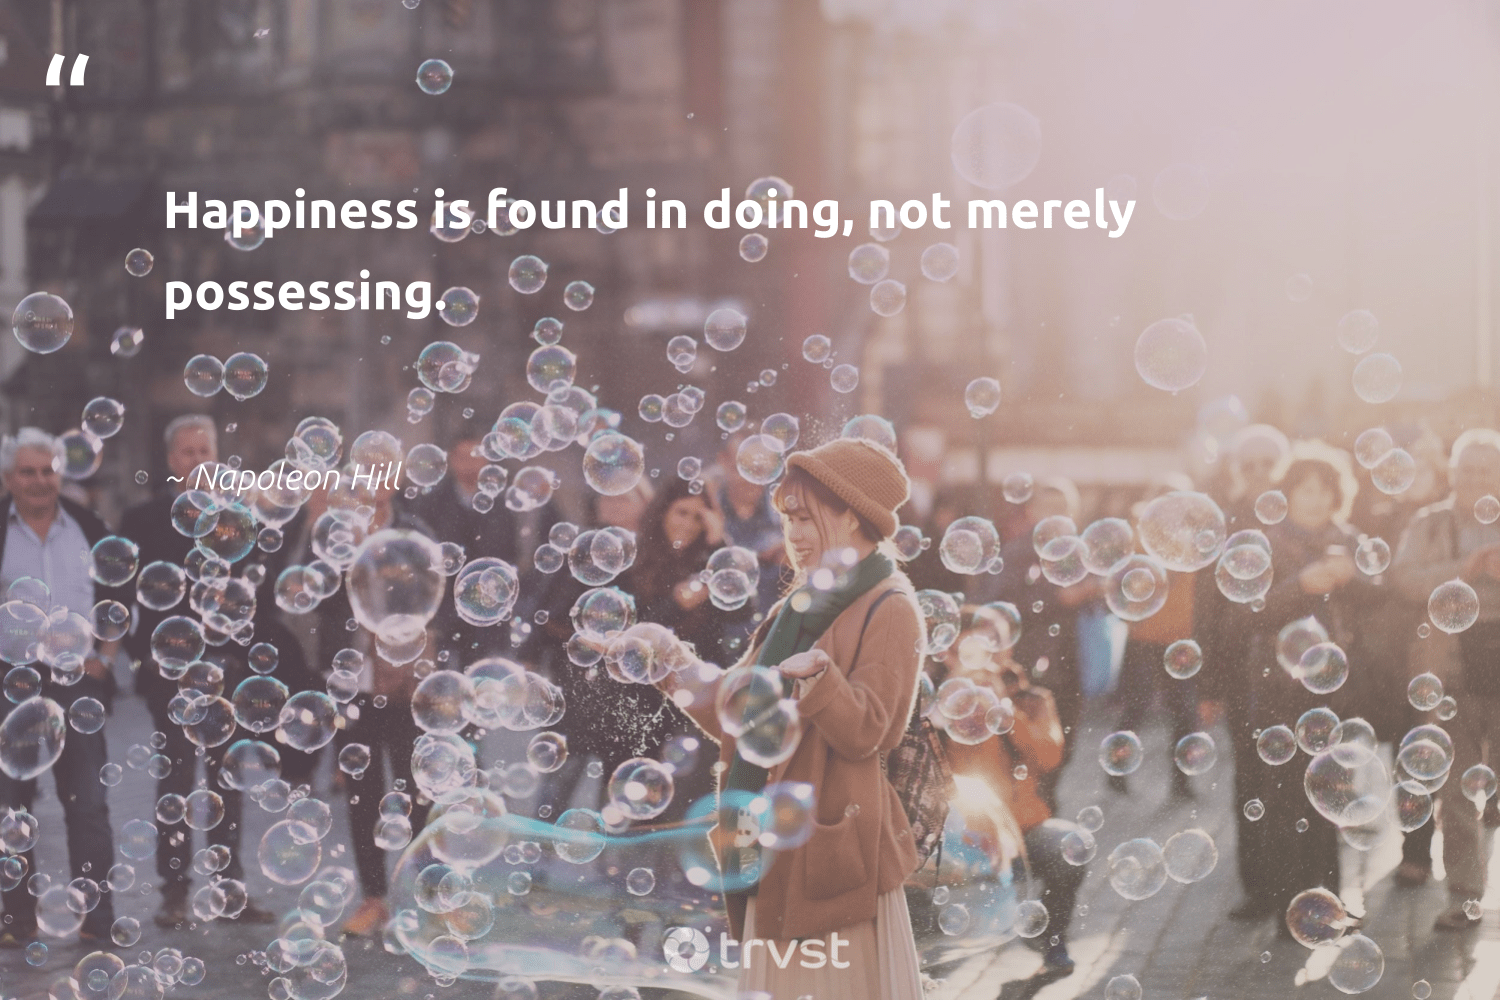 """""""Happiness is found in doing, not merely possessing.""""  - Napoleon Hill #trvst #quotes #happiness #begreat #dosomething #changemakers #socialimpact #nevergiveup #impact #mindset #ecoconscious #togetherwecan"""